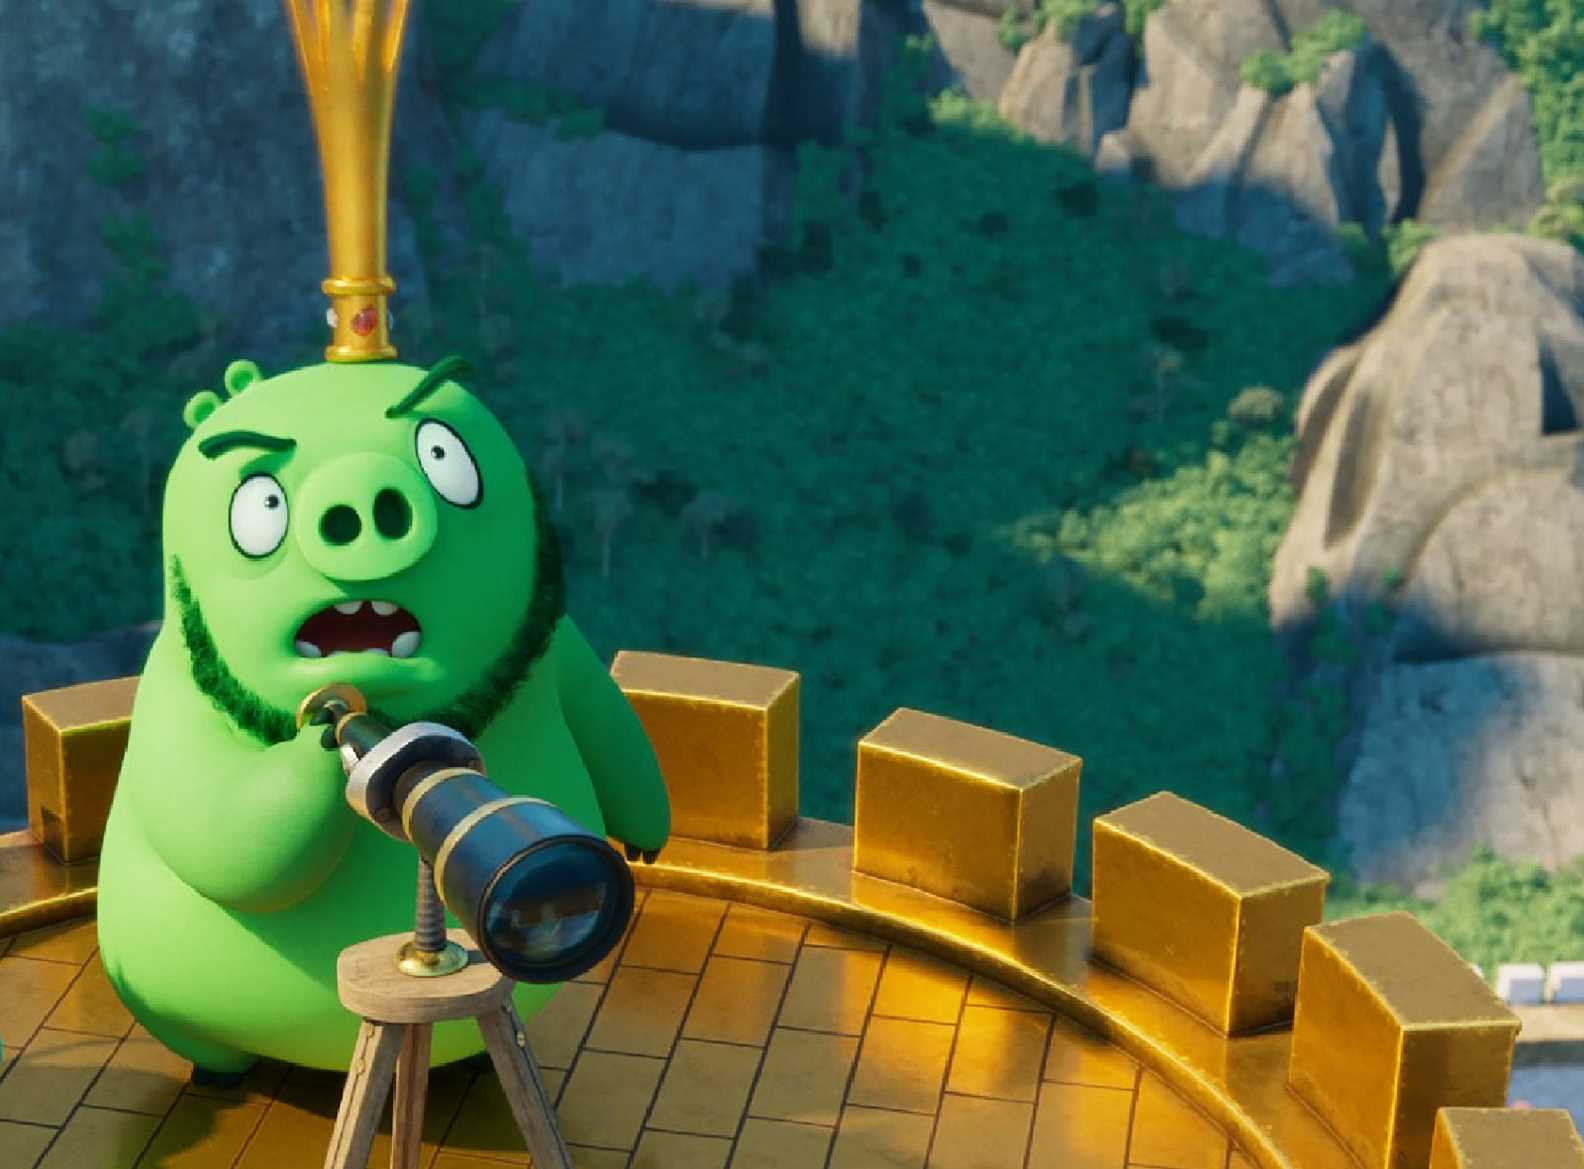 Watch Angry Birds 2 at Vue Cinema | Book Tickets Online